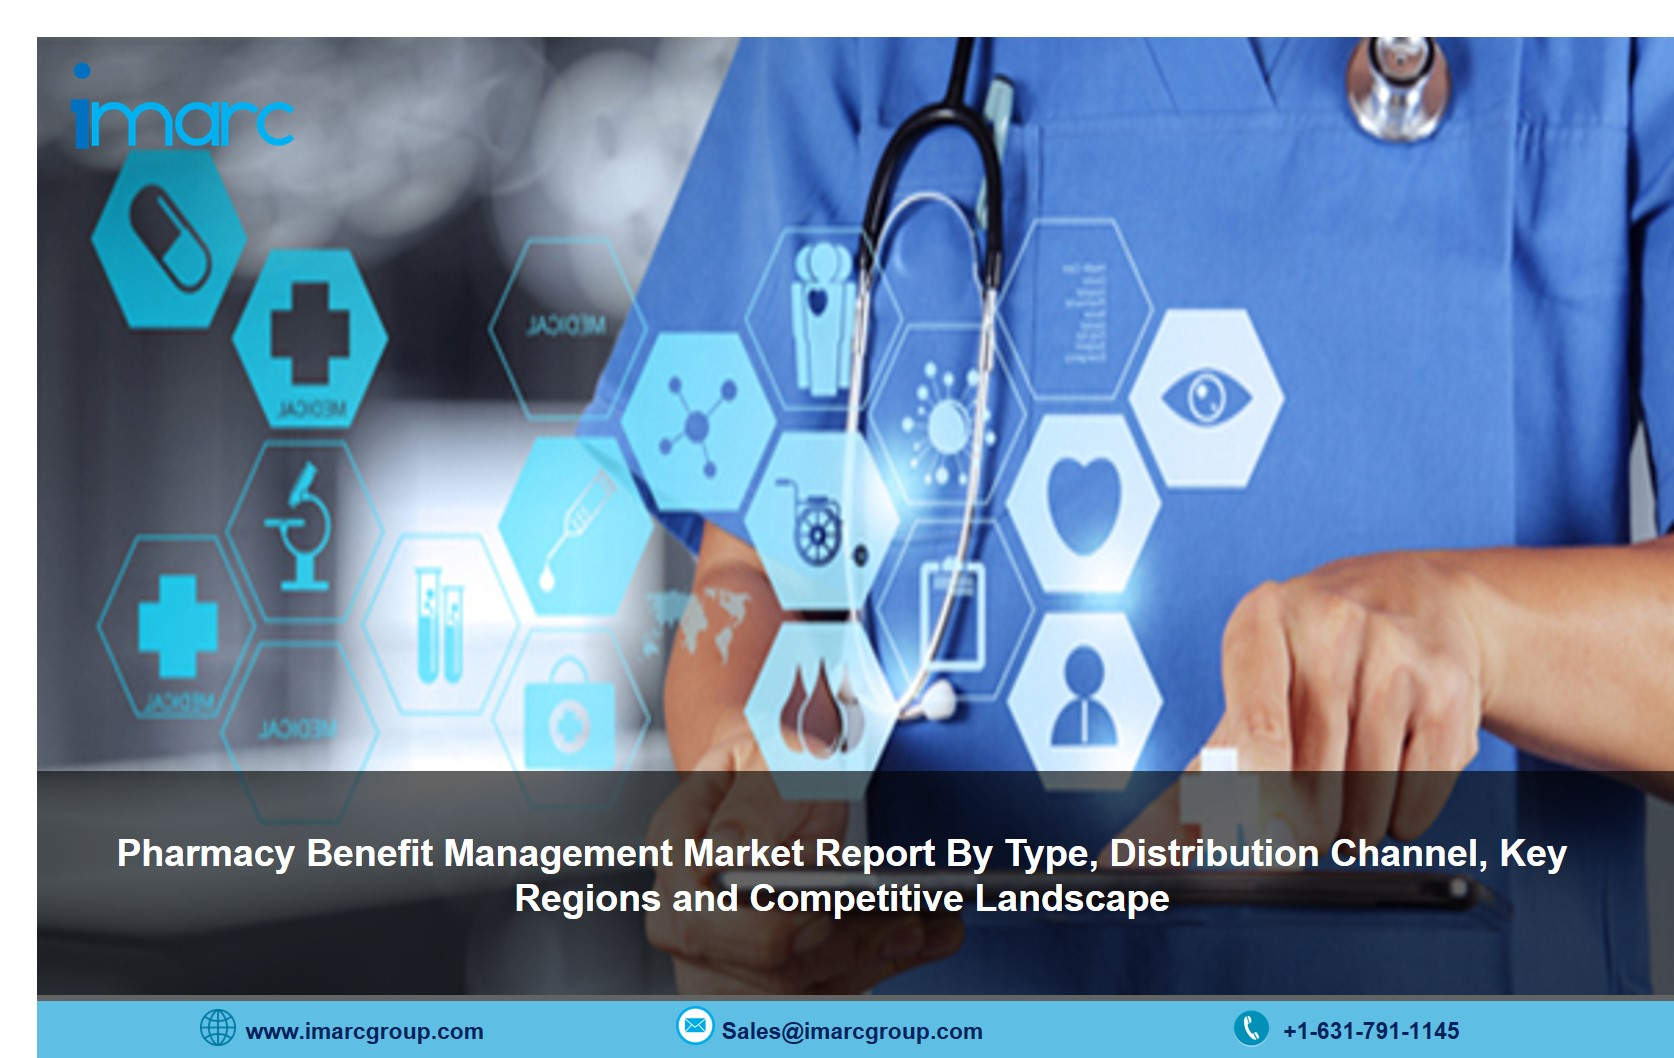 Pharmacy Benefit Management Market 2021-26: Size. Share, Price and Industry Trends